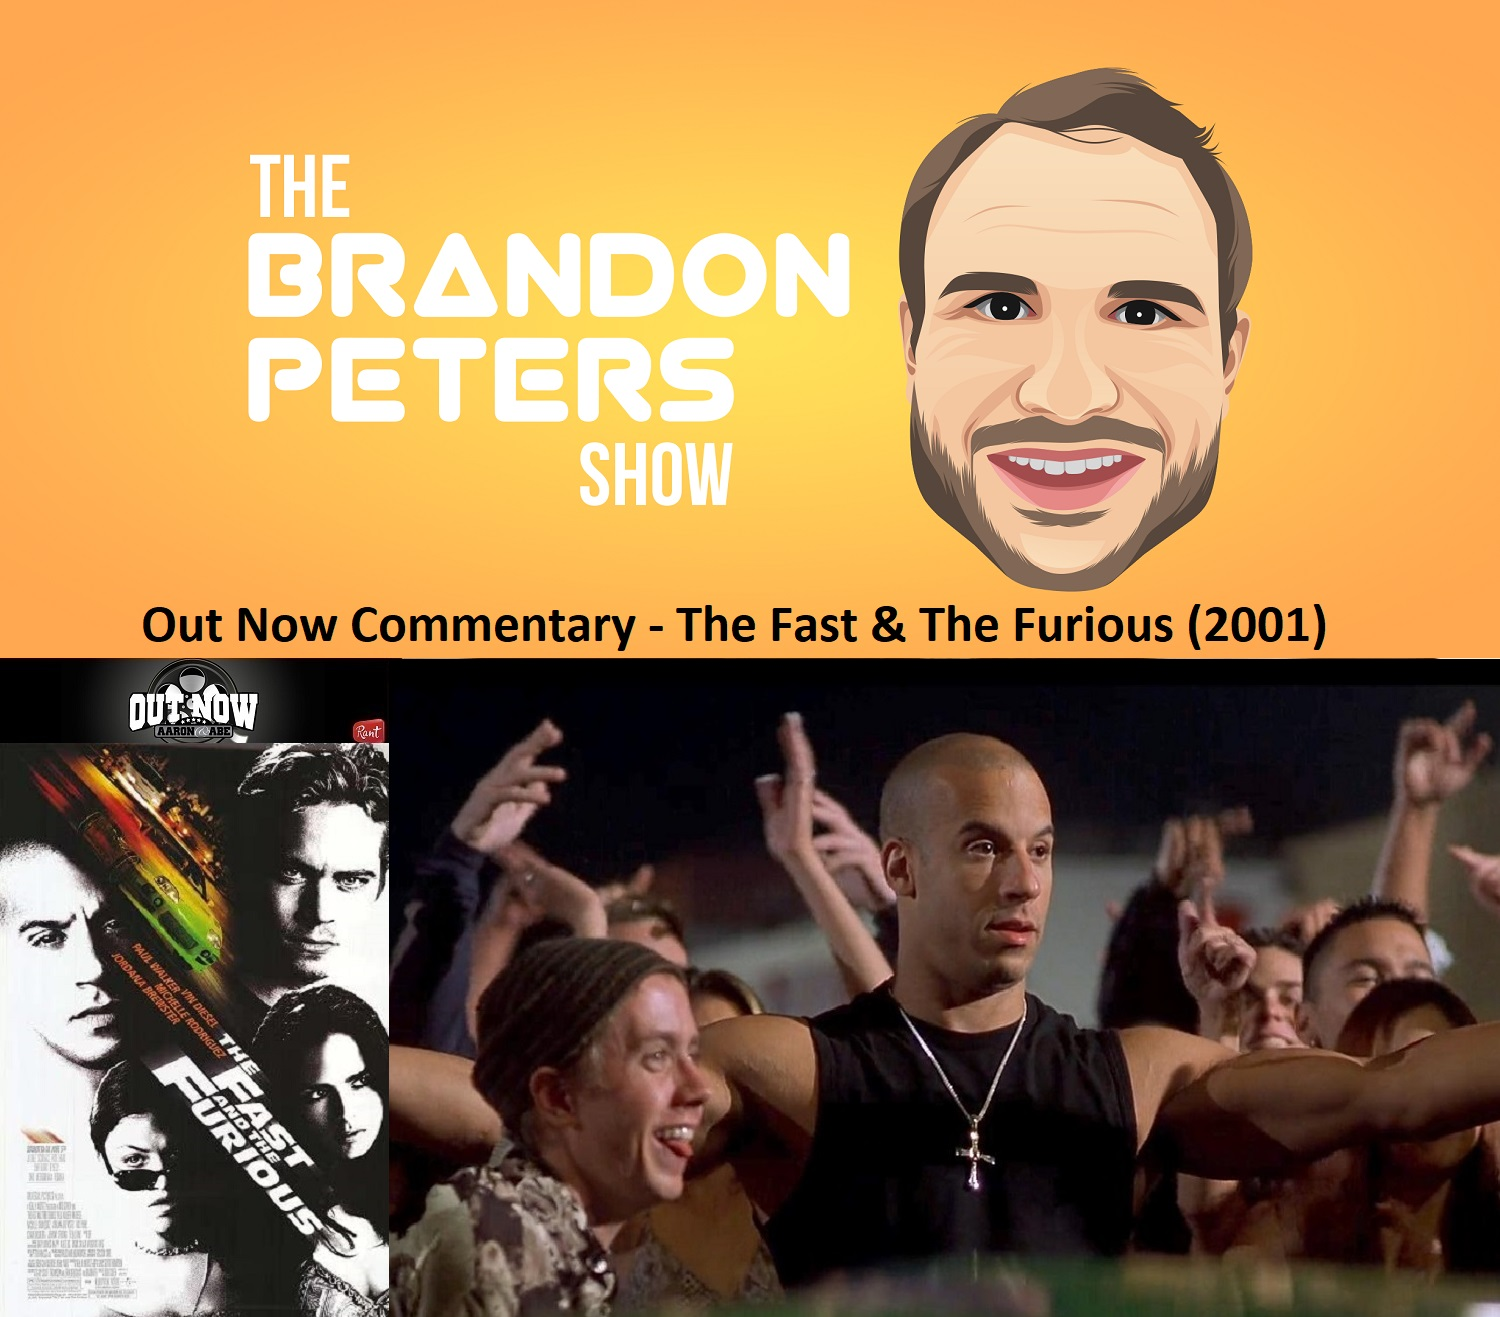 Out Now Commentary – The Fast & The Furious (2001)